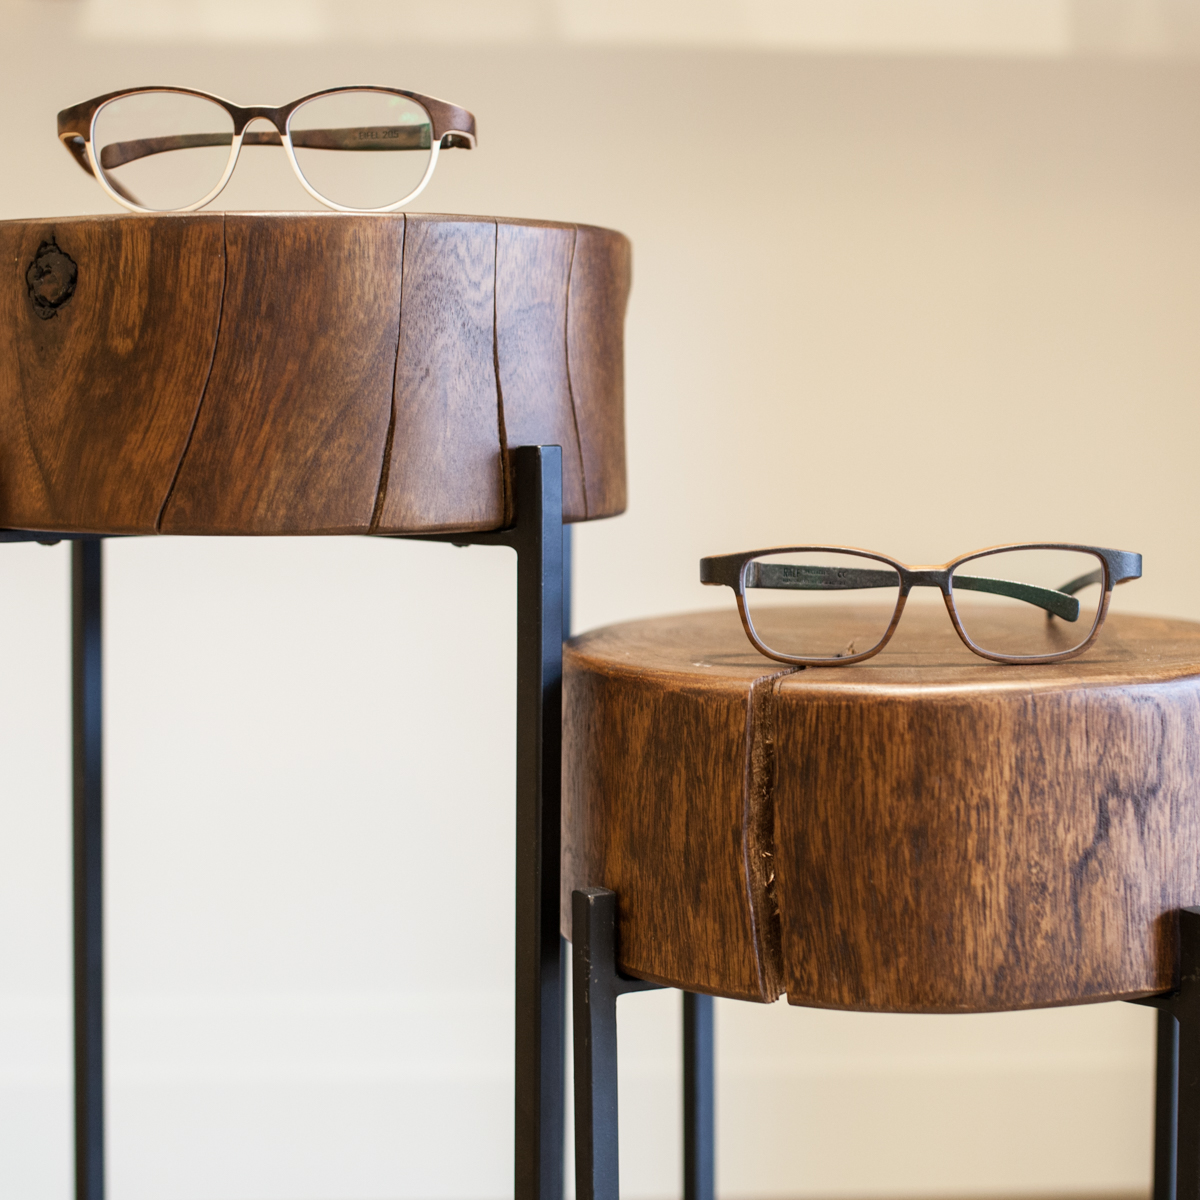 Frames from Rolf Spectacles (L-R) Eifel and Tickford, placed on Roost End Tables, hand made in India from Acai wood